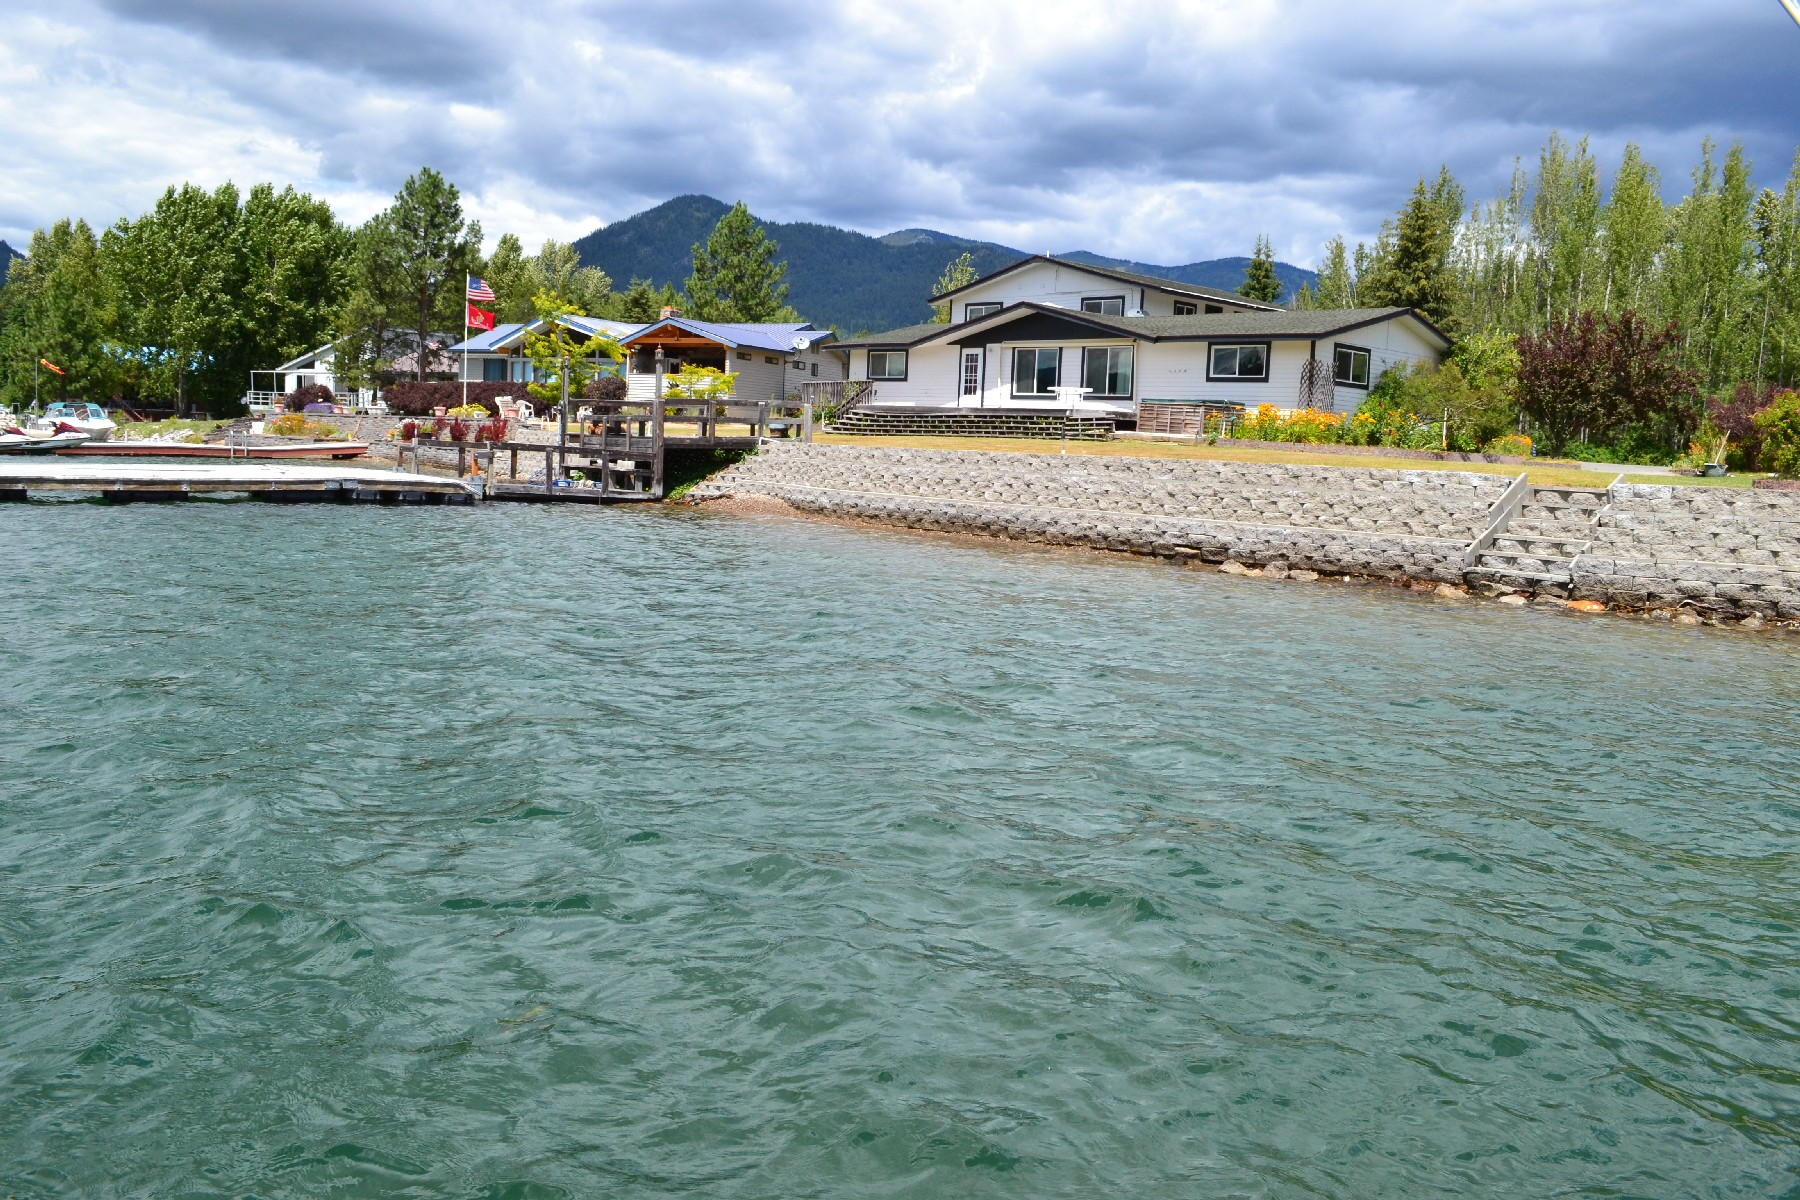 Single Family Home for Sale at 105' of Pend Oreille River frontage in Snug Harbor 500 Snug Harbor Sandpoint, Idaho, 83864 United States